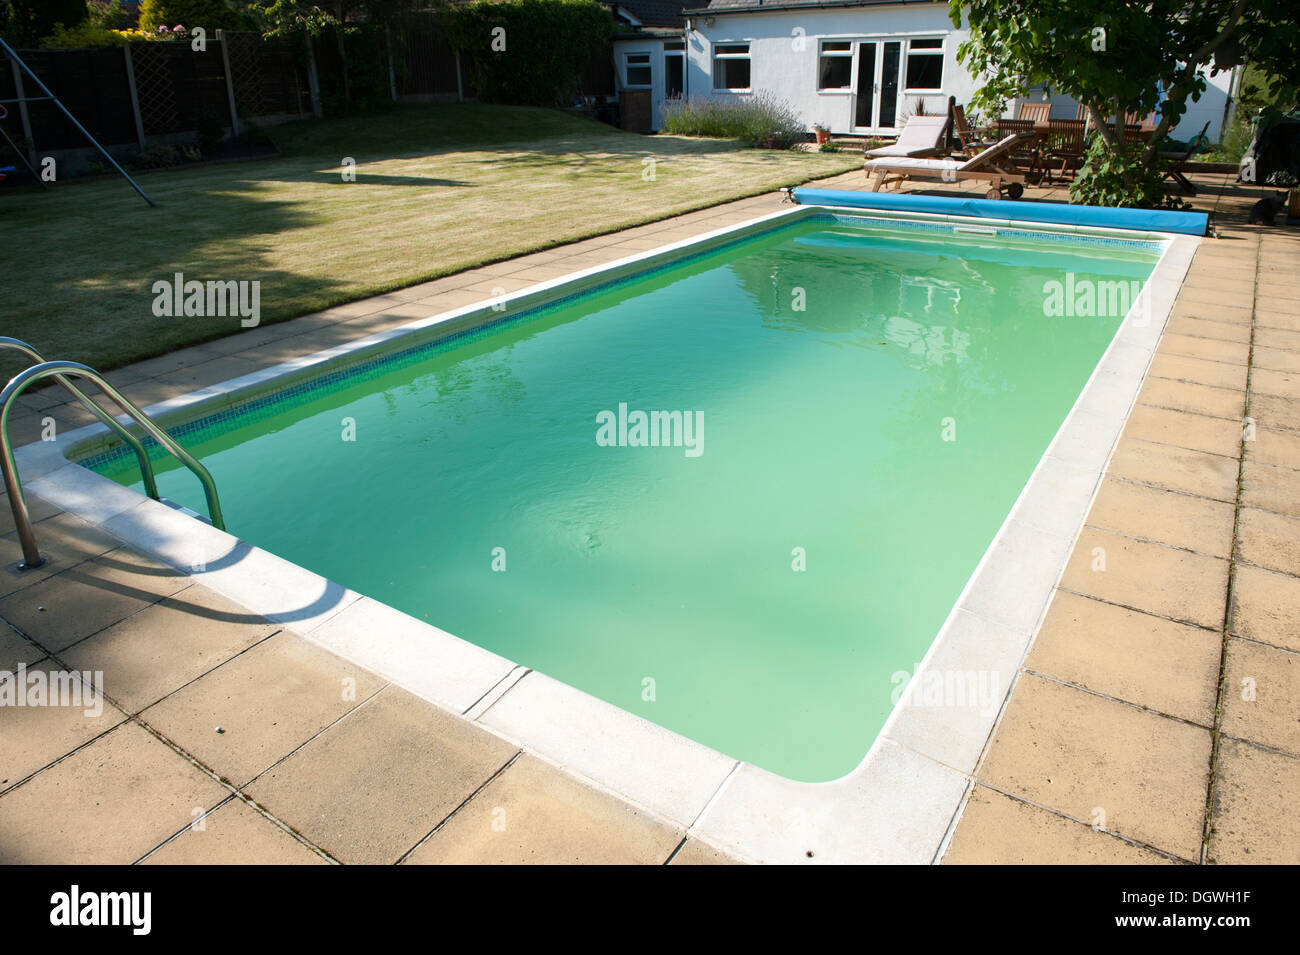 House Garden Large Swimming Pool Green Algae Cloudy Water Stock Photo 62027771 Alamy